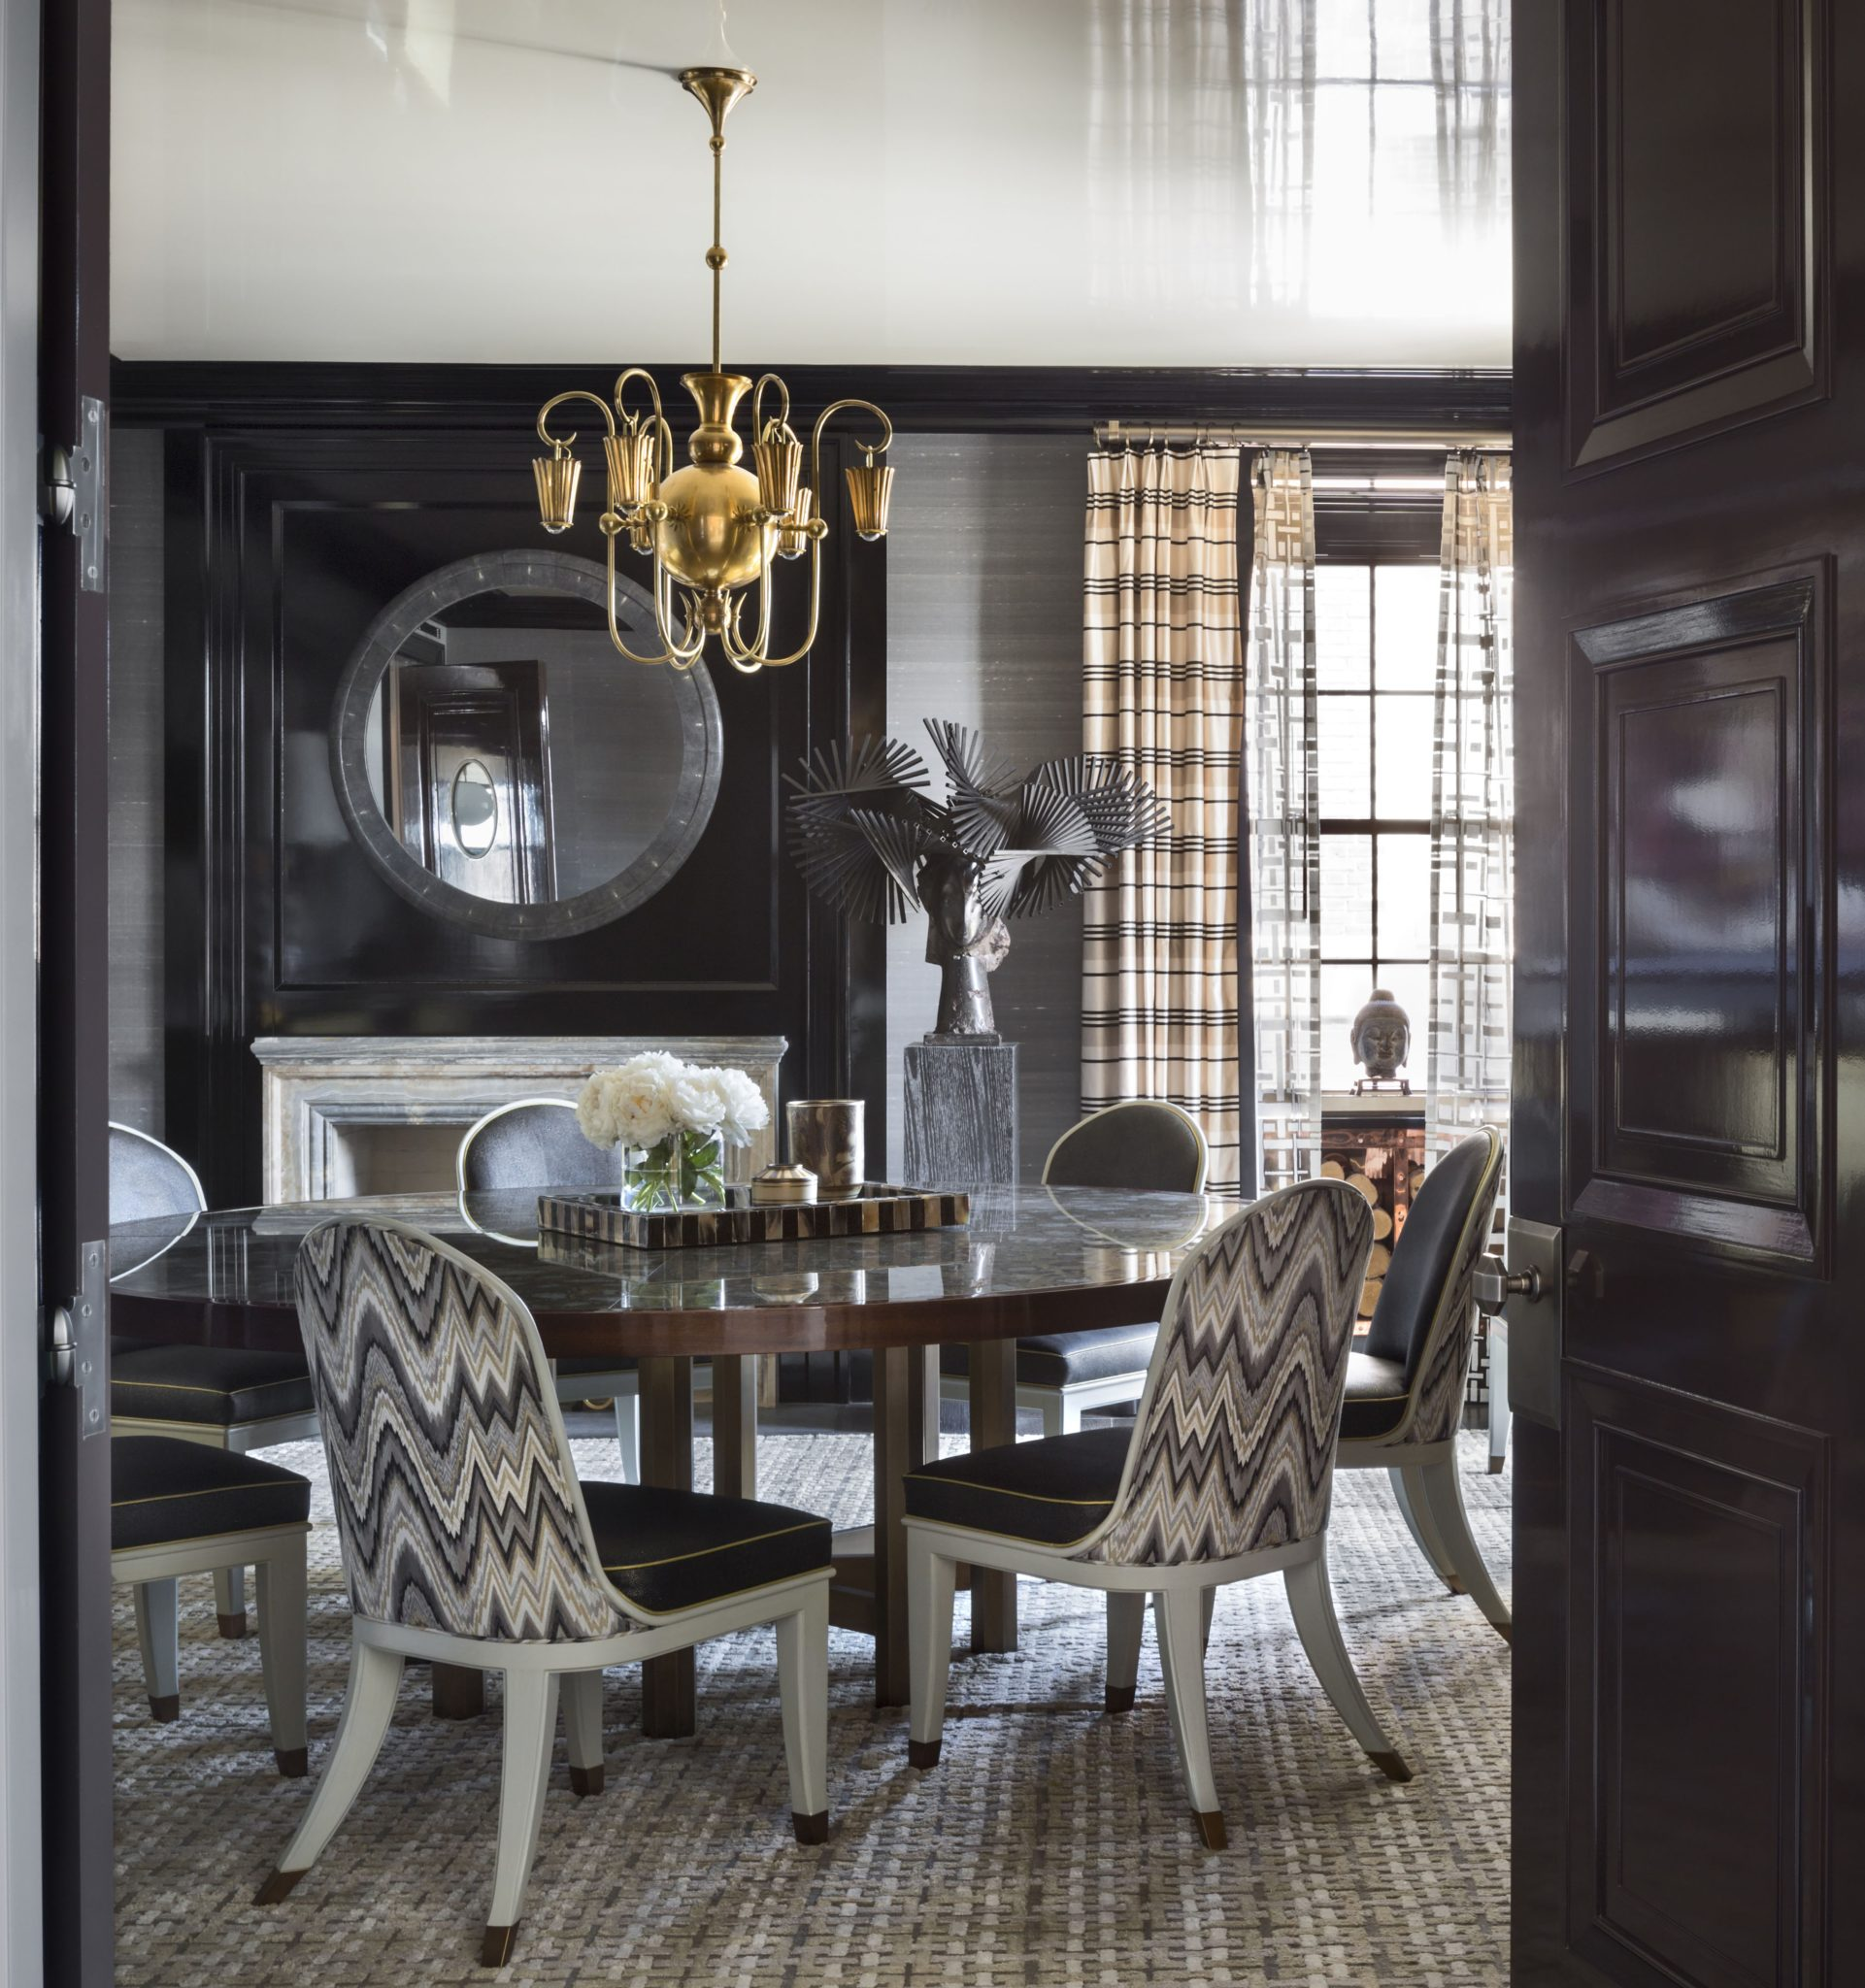 The dining room window was repositioned to favor the view and to accommodate a new fireplace. The dining chairs and the églomisé table are custom designs. The circa-1925 chandelier is from H.M. Luther, and the rug is by Beauvais Carpets.